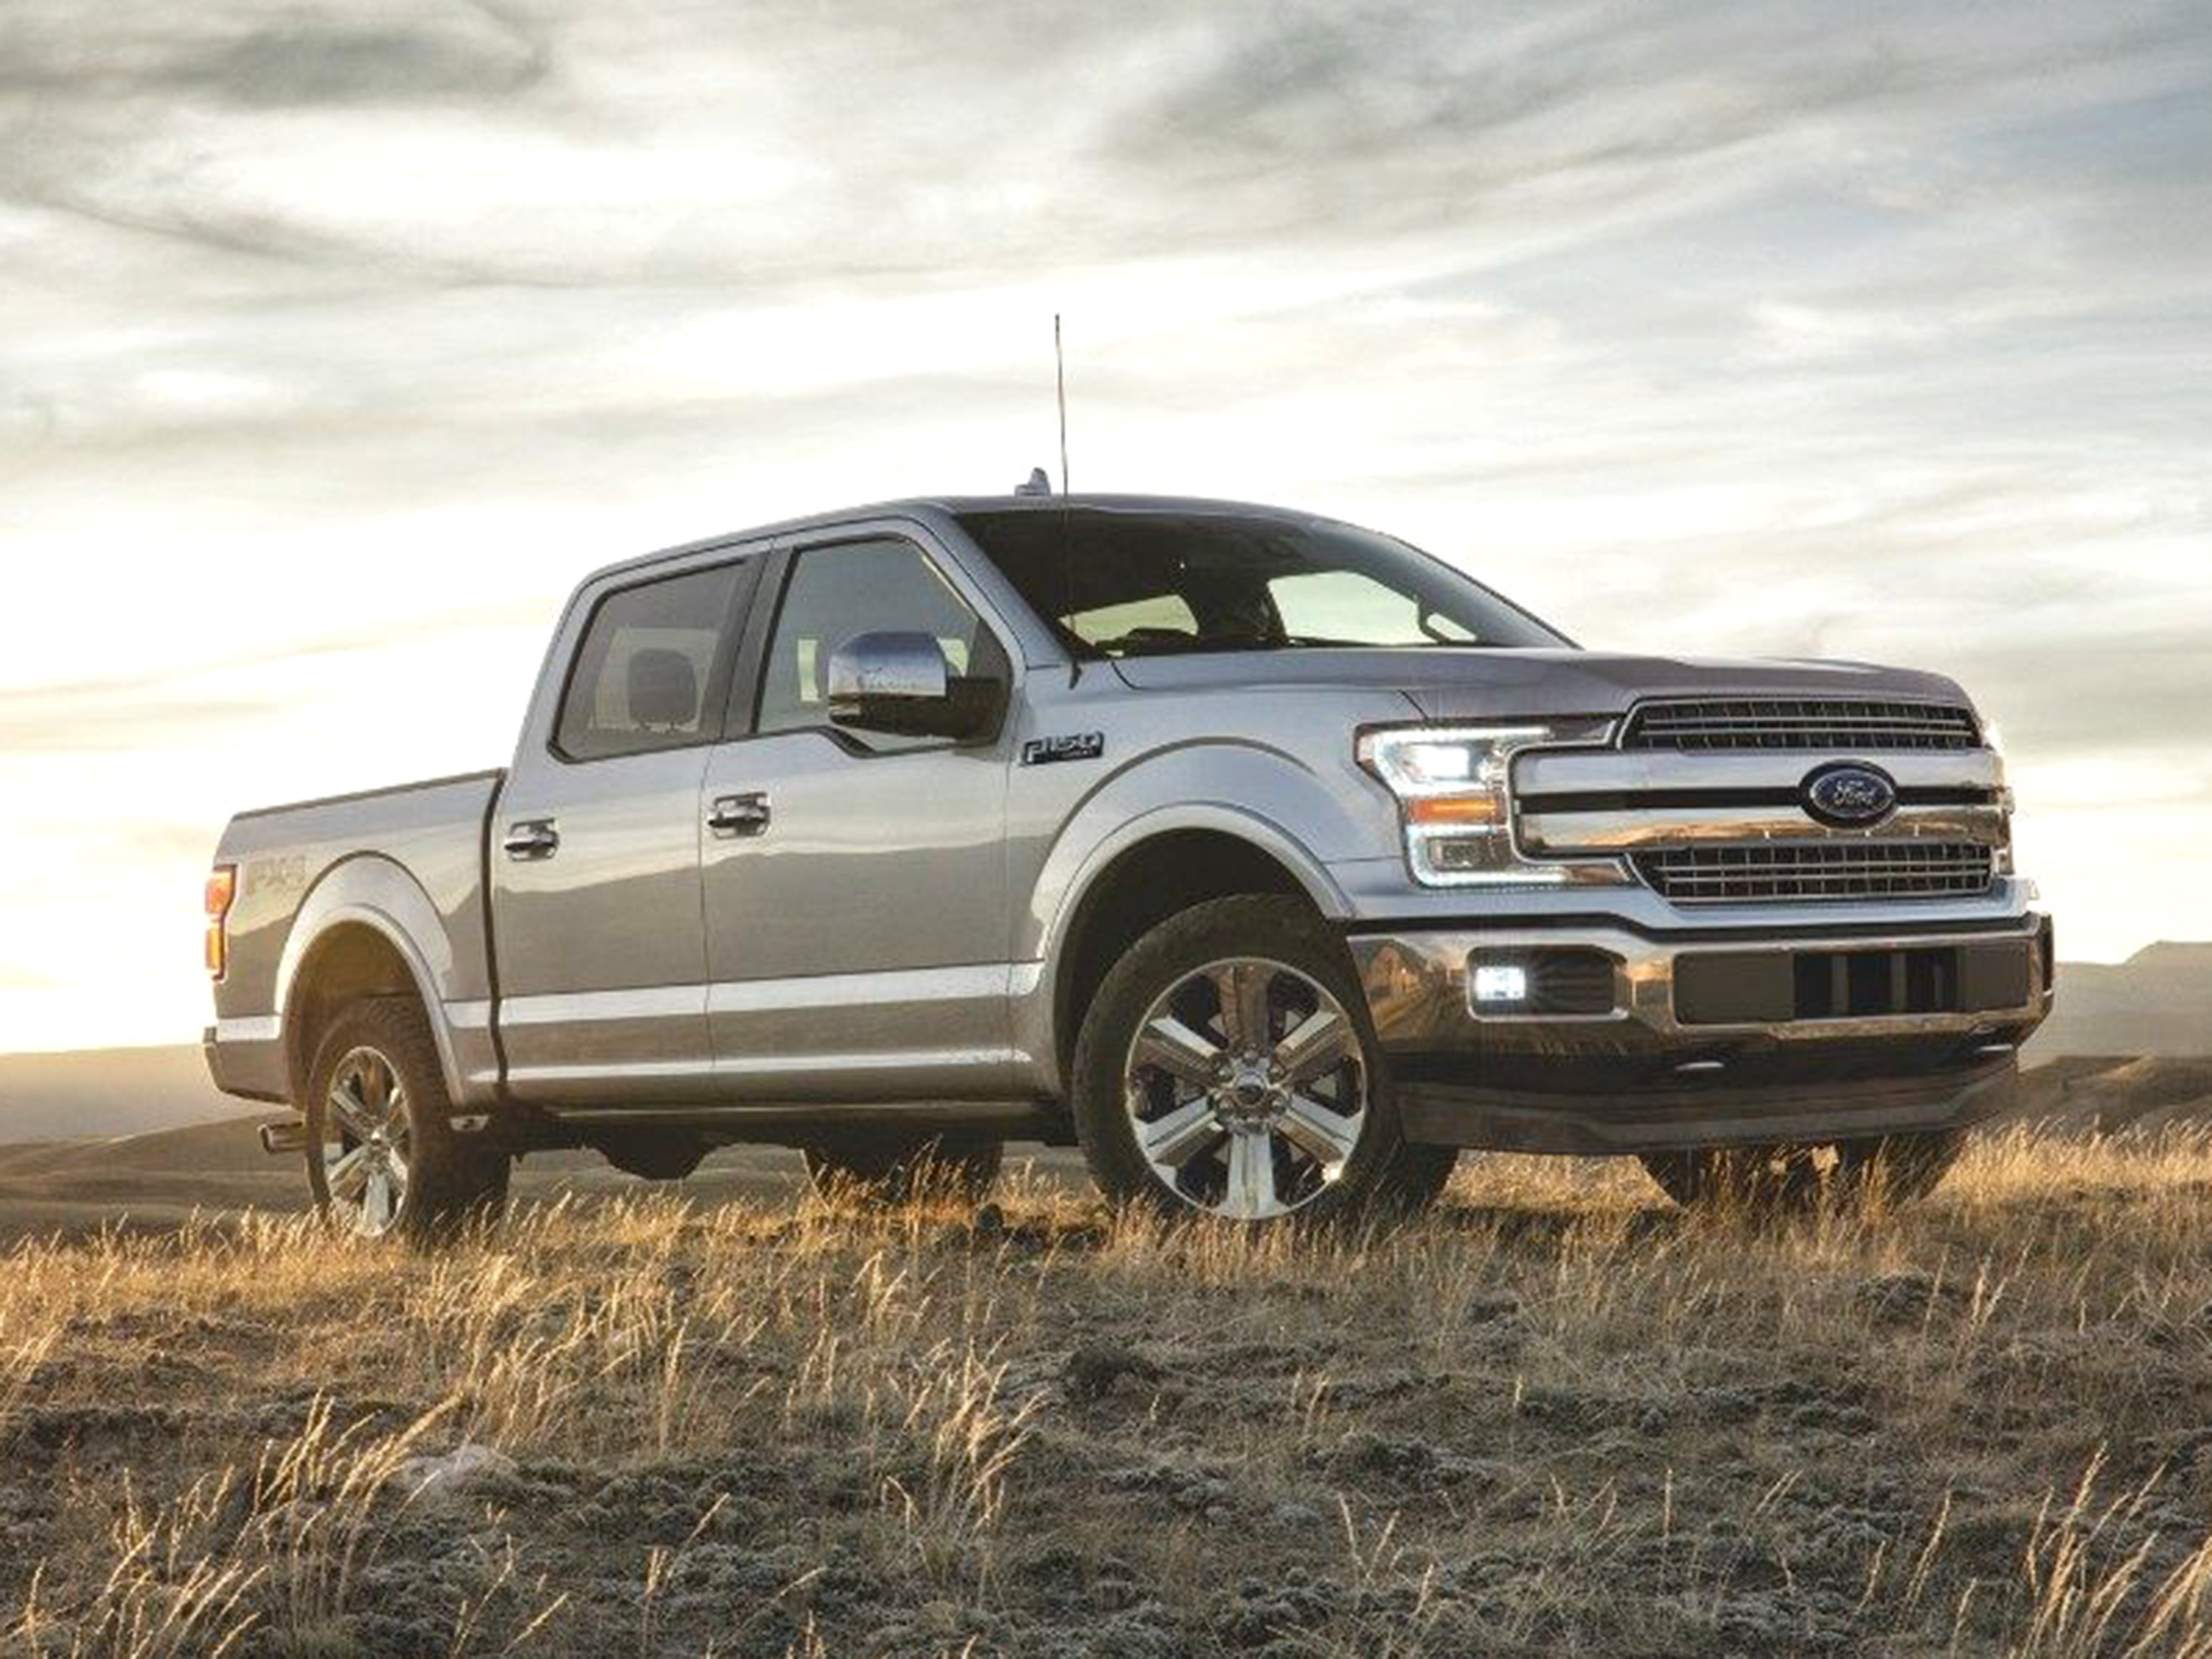 Ford suspended production of the F-150 at its plant in Dearborn Michigan on Wednesday night. It had already suspended truck production at a plant just outside Kansas City Missouri. Those are the only plants that make the truck